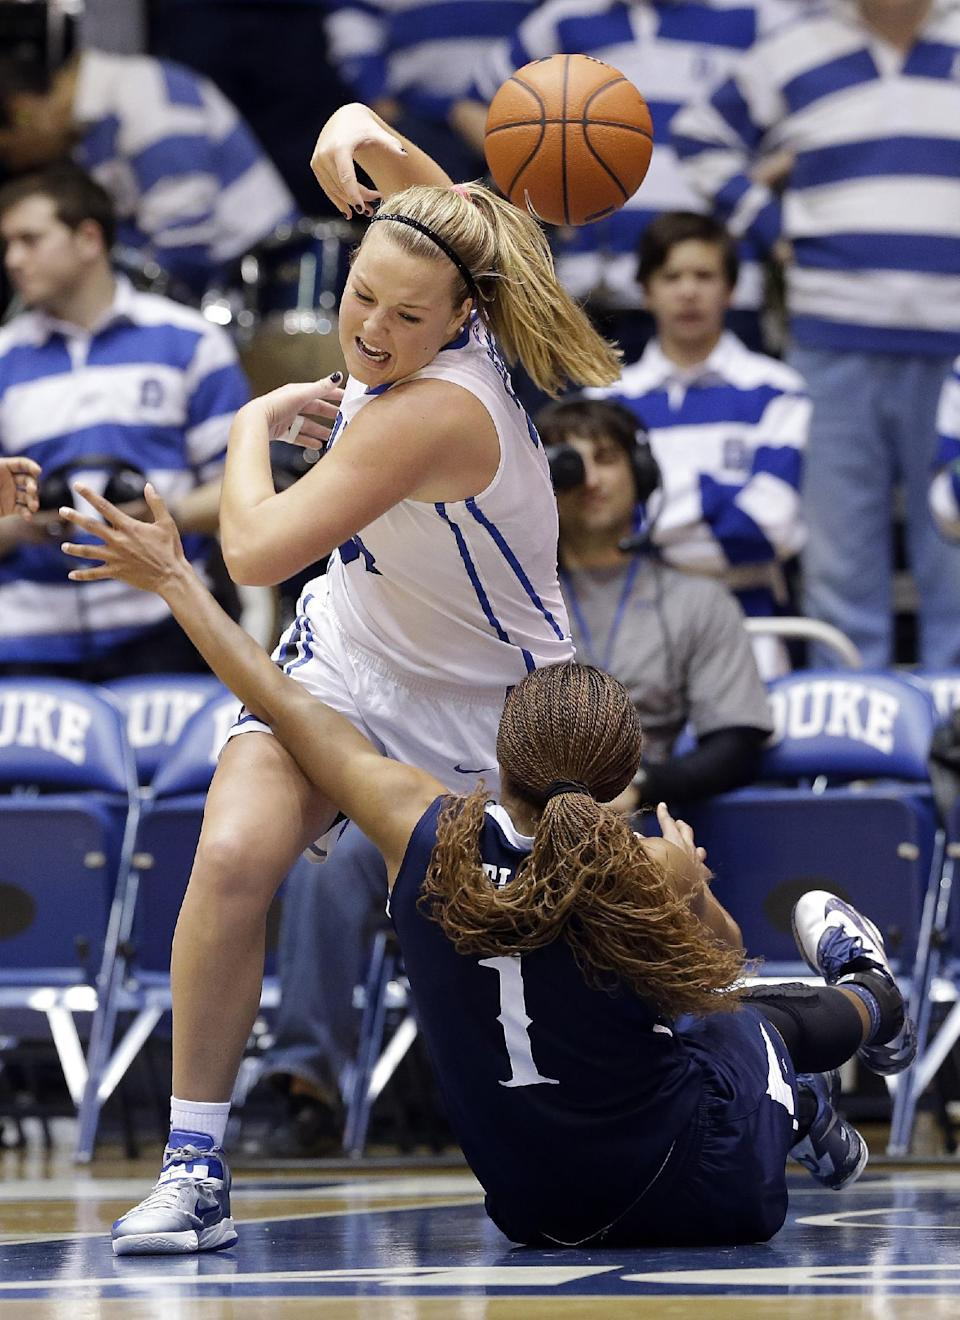 Duke's Tricia Liston and Old Dominion's Shae Kelley (1) struggle for possession of the ball during the second half of an NCAA college basketball game in Durham, N.C., Thursday, Jan. 2, 2014. Duke won 87-63. (AP Photo/Gerry Broome)